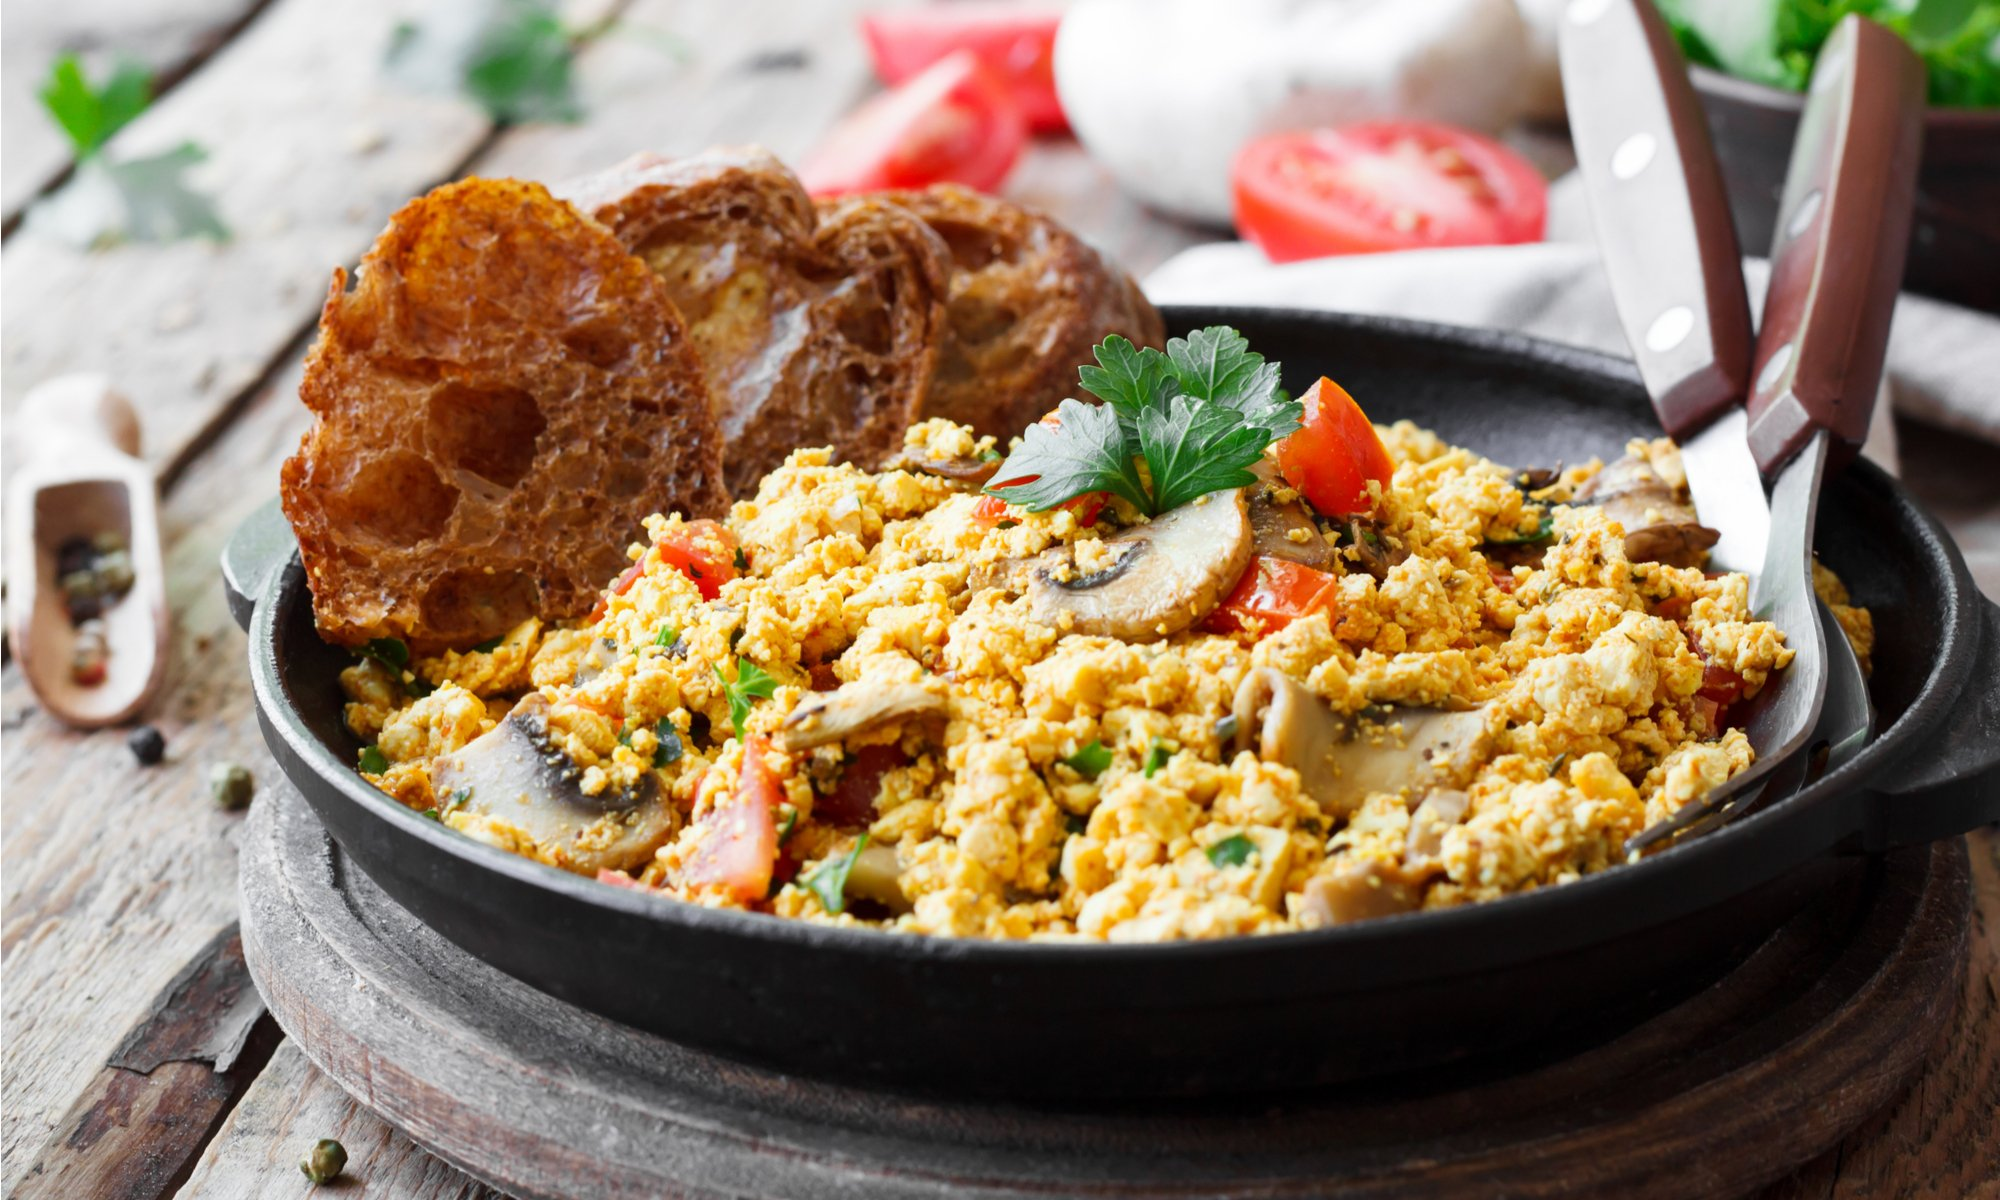 TURMERIC TOFU SCRAMBLE: QUICK, FILLING, AND EASY ON THE WALLET